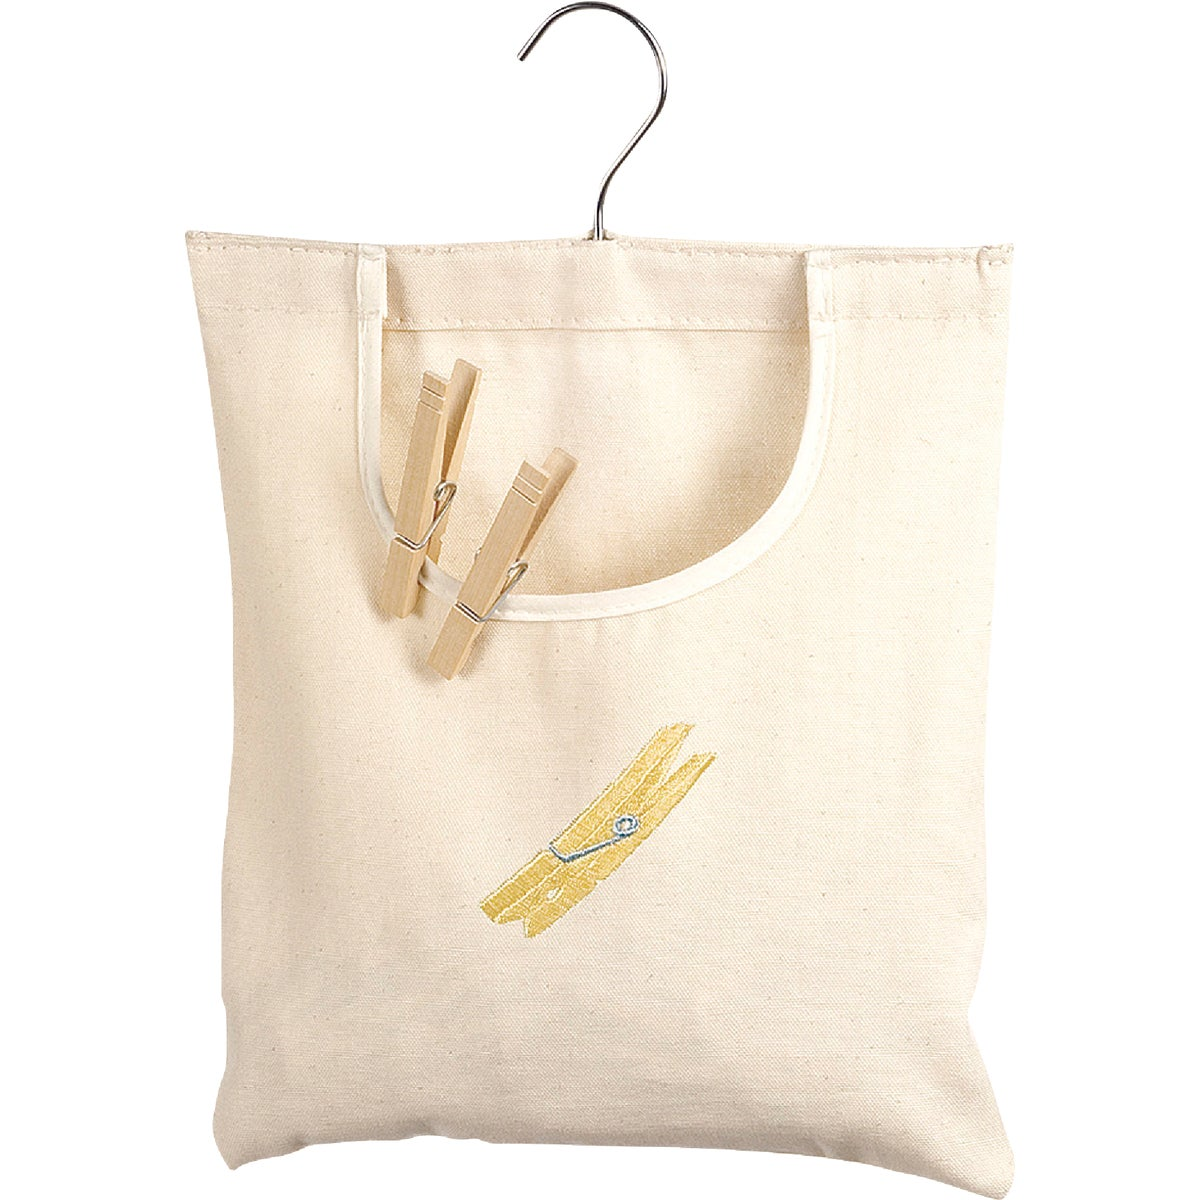 11X15 CLOTHESPIN BAG - 1220049 by Homz  Seymour